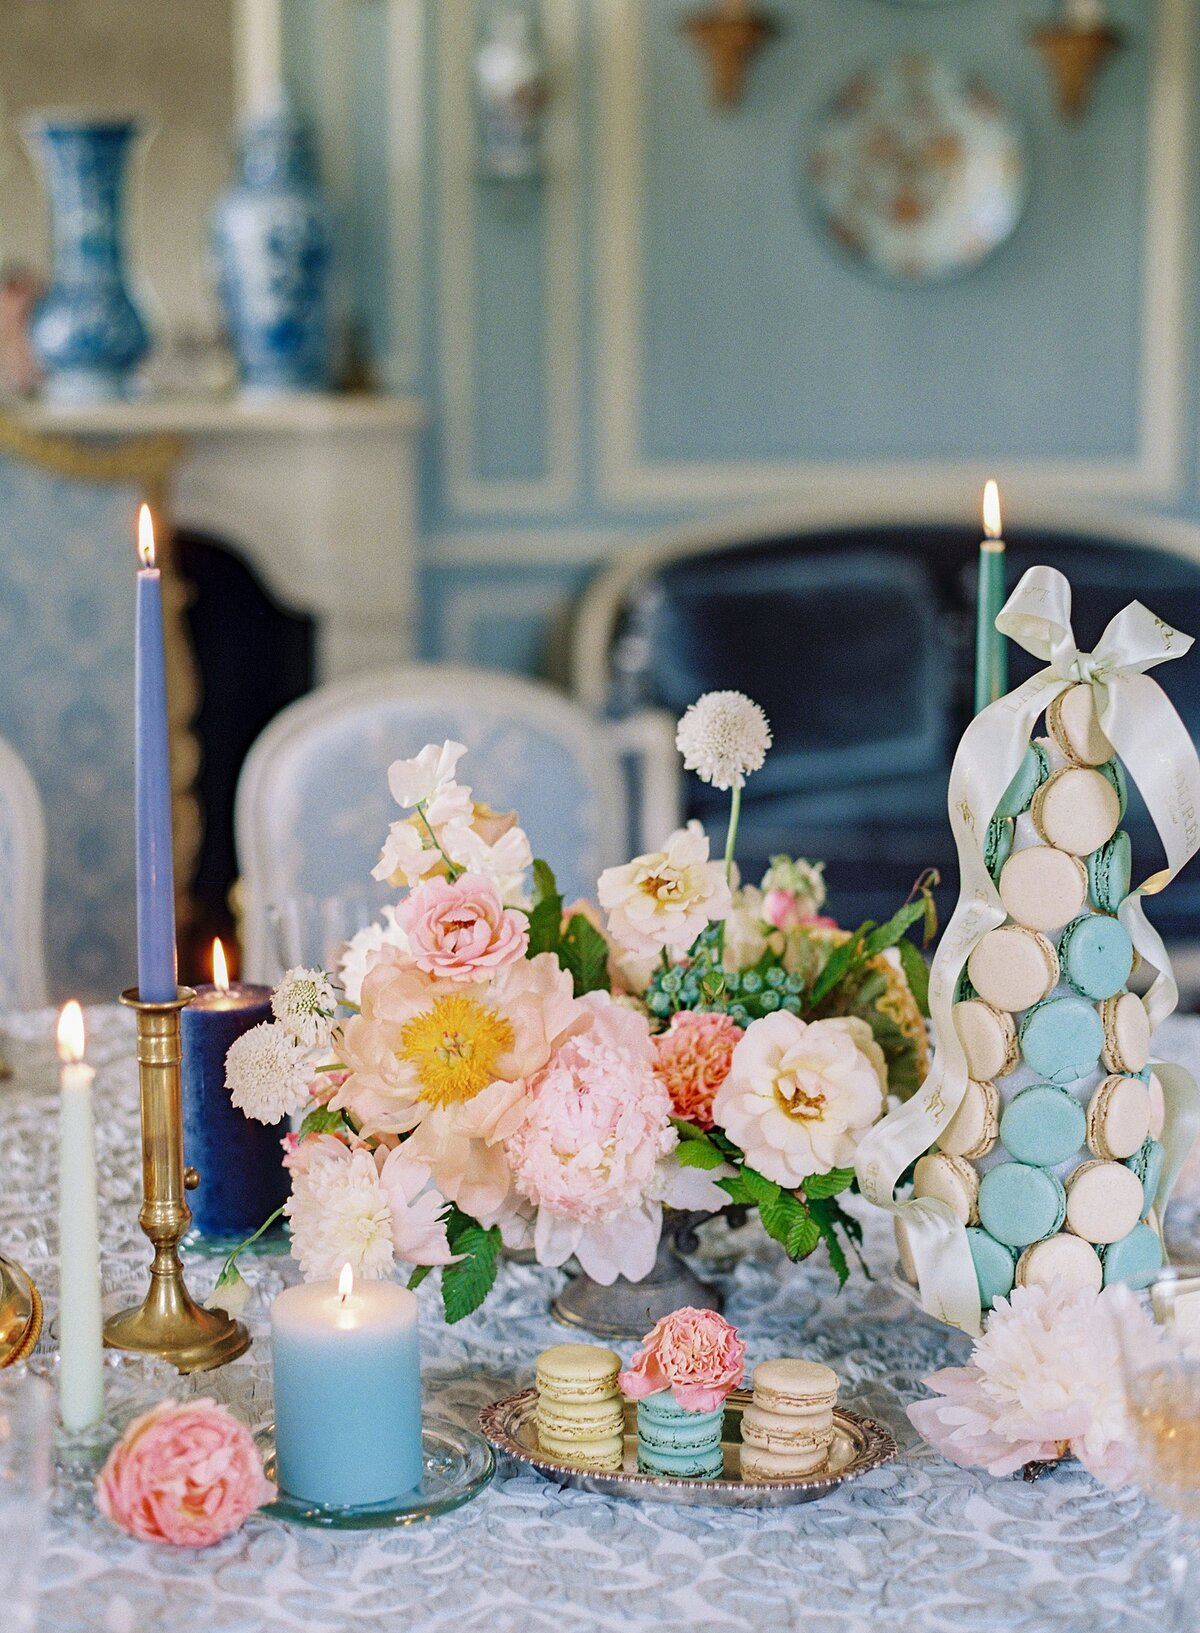 NKT-Events_Wedding-Inspiration-Editorial_Chateau-de-Villette-Bridal_0156